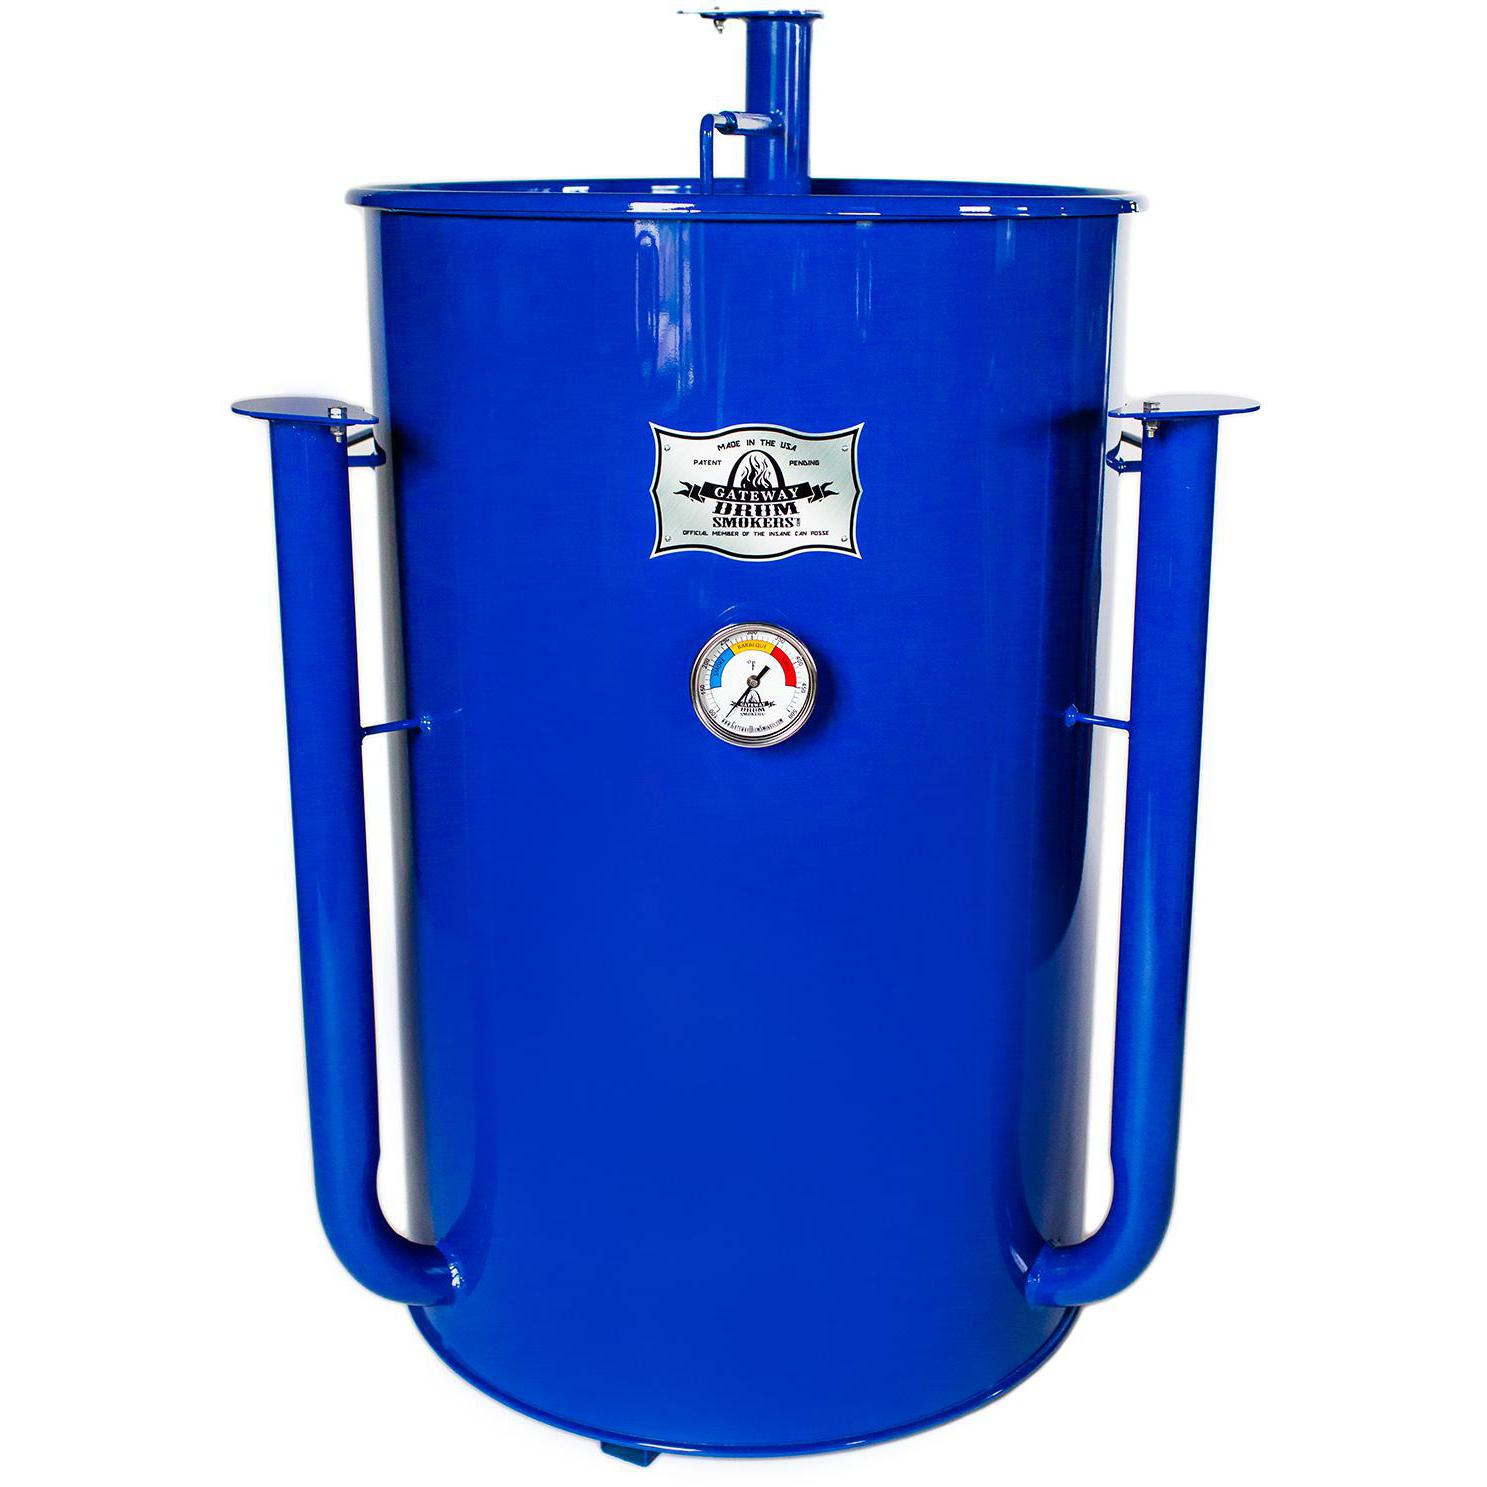 Gateway Drum Smokers 55 Gallon Charcoal BBQ Smoker - Royal - 55144